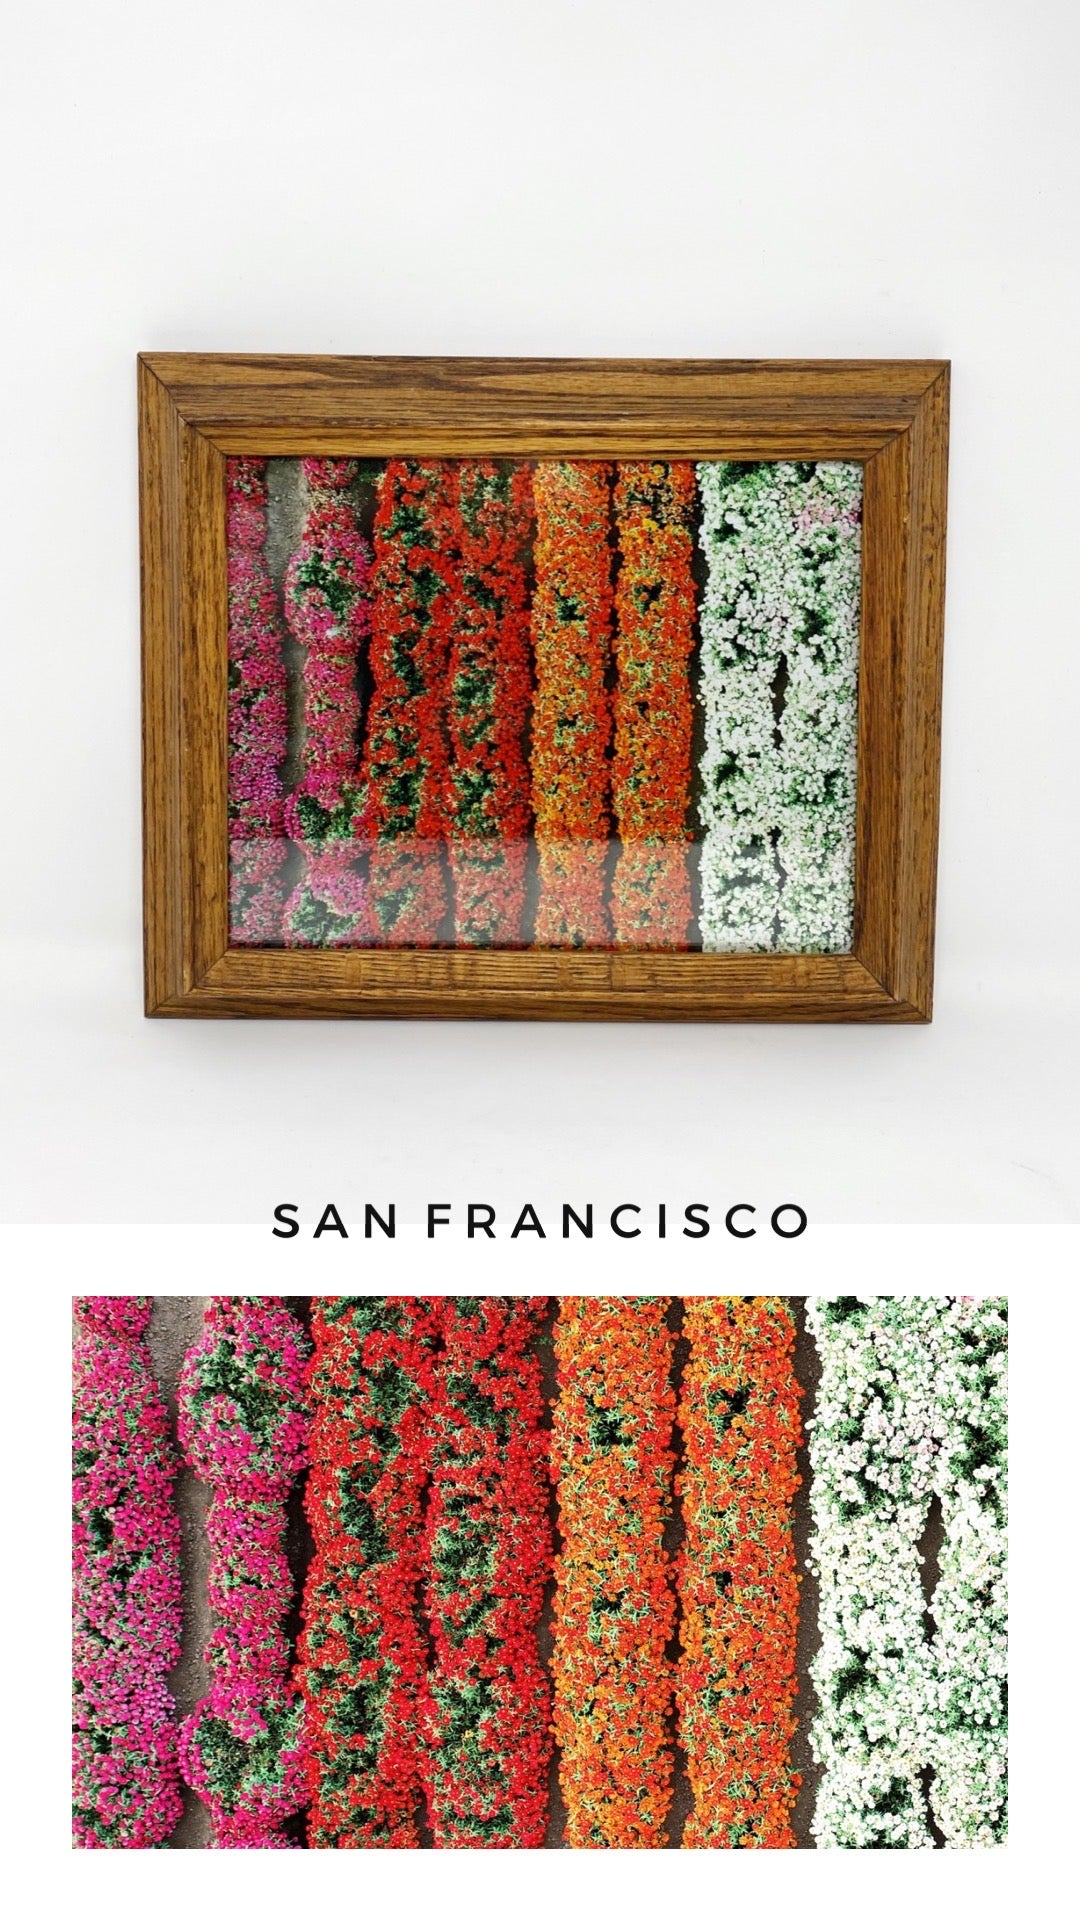 FRAMED 'SAN FRANCISCO' PRINT